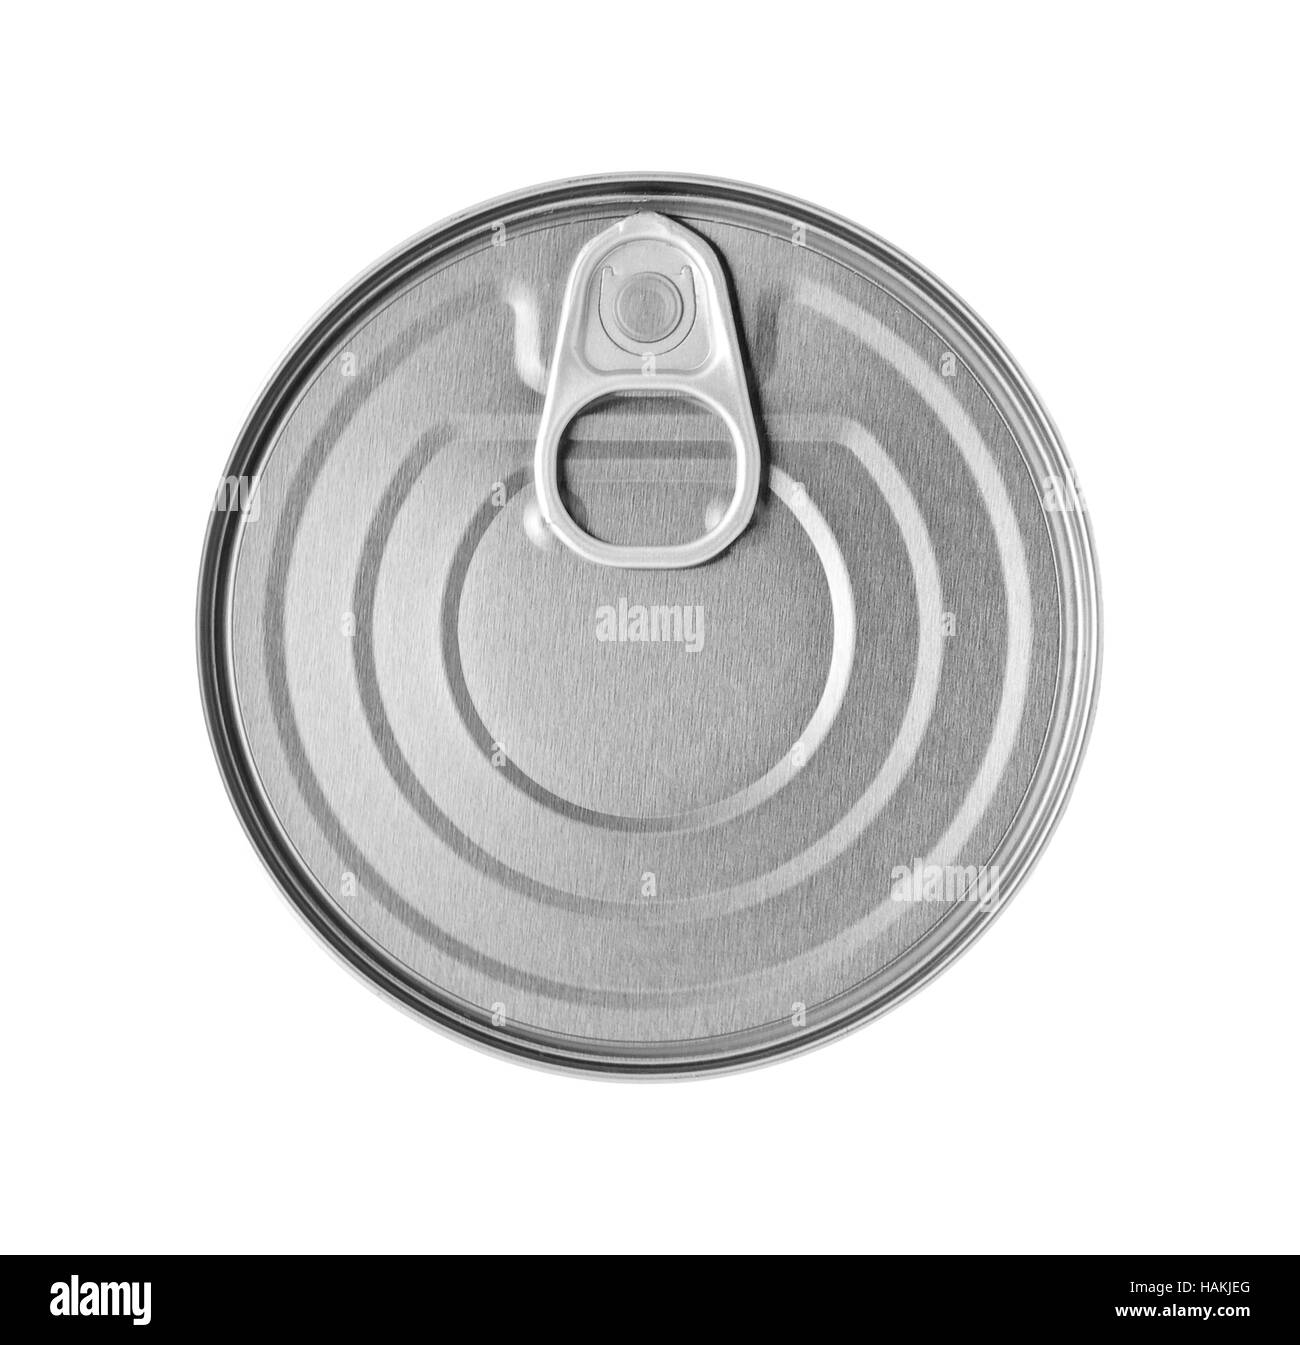 conserve tin can - Stock Image